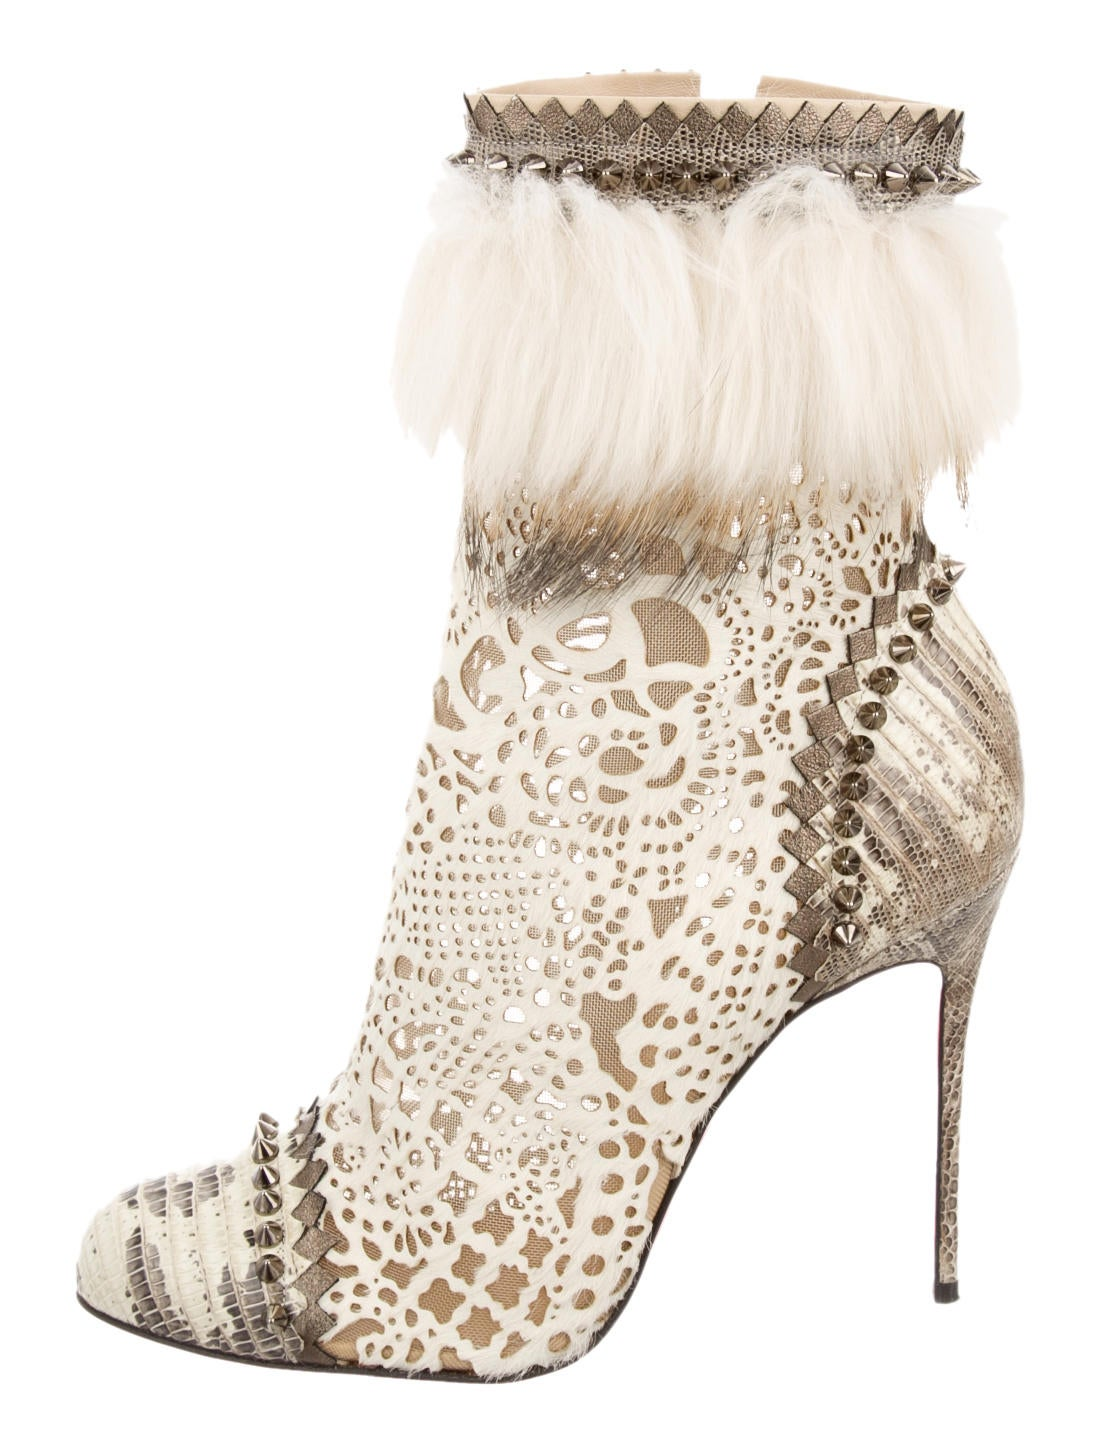 Christian Louboutin Ankle Boots - Shoes - CHT37118 | The RealReal